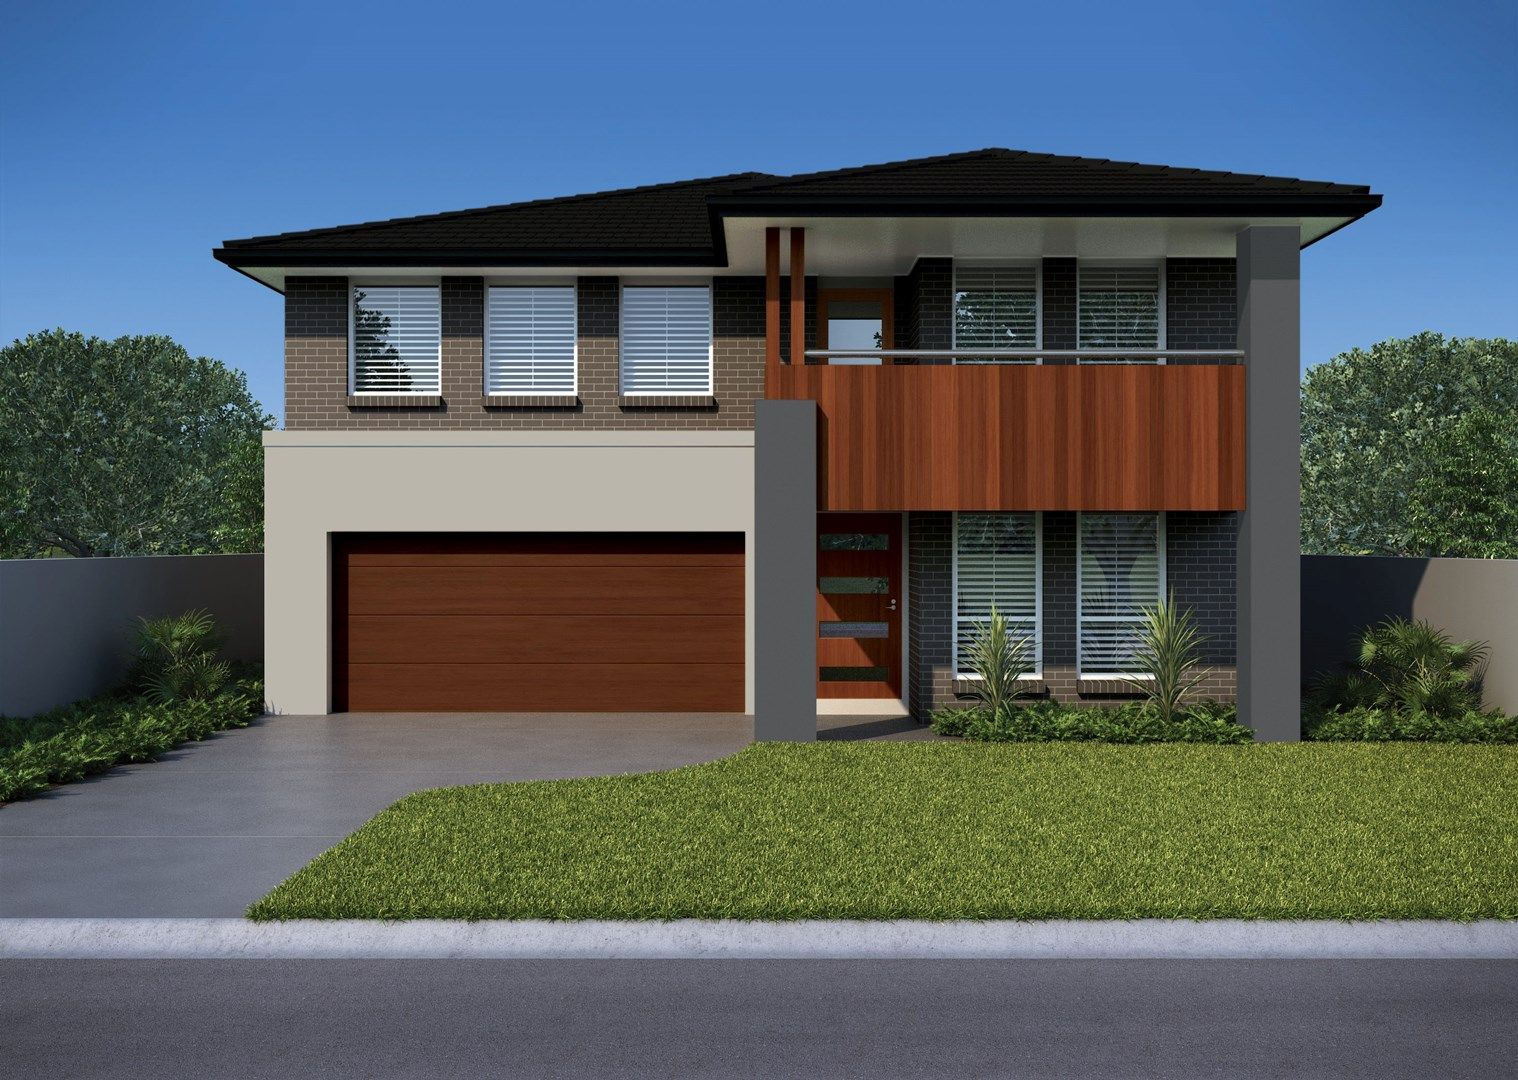 Lot 217 Mowbray Road, Kellyville NSW 2155, Image 0